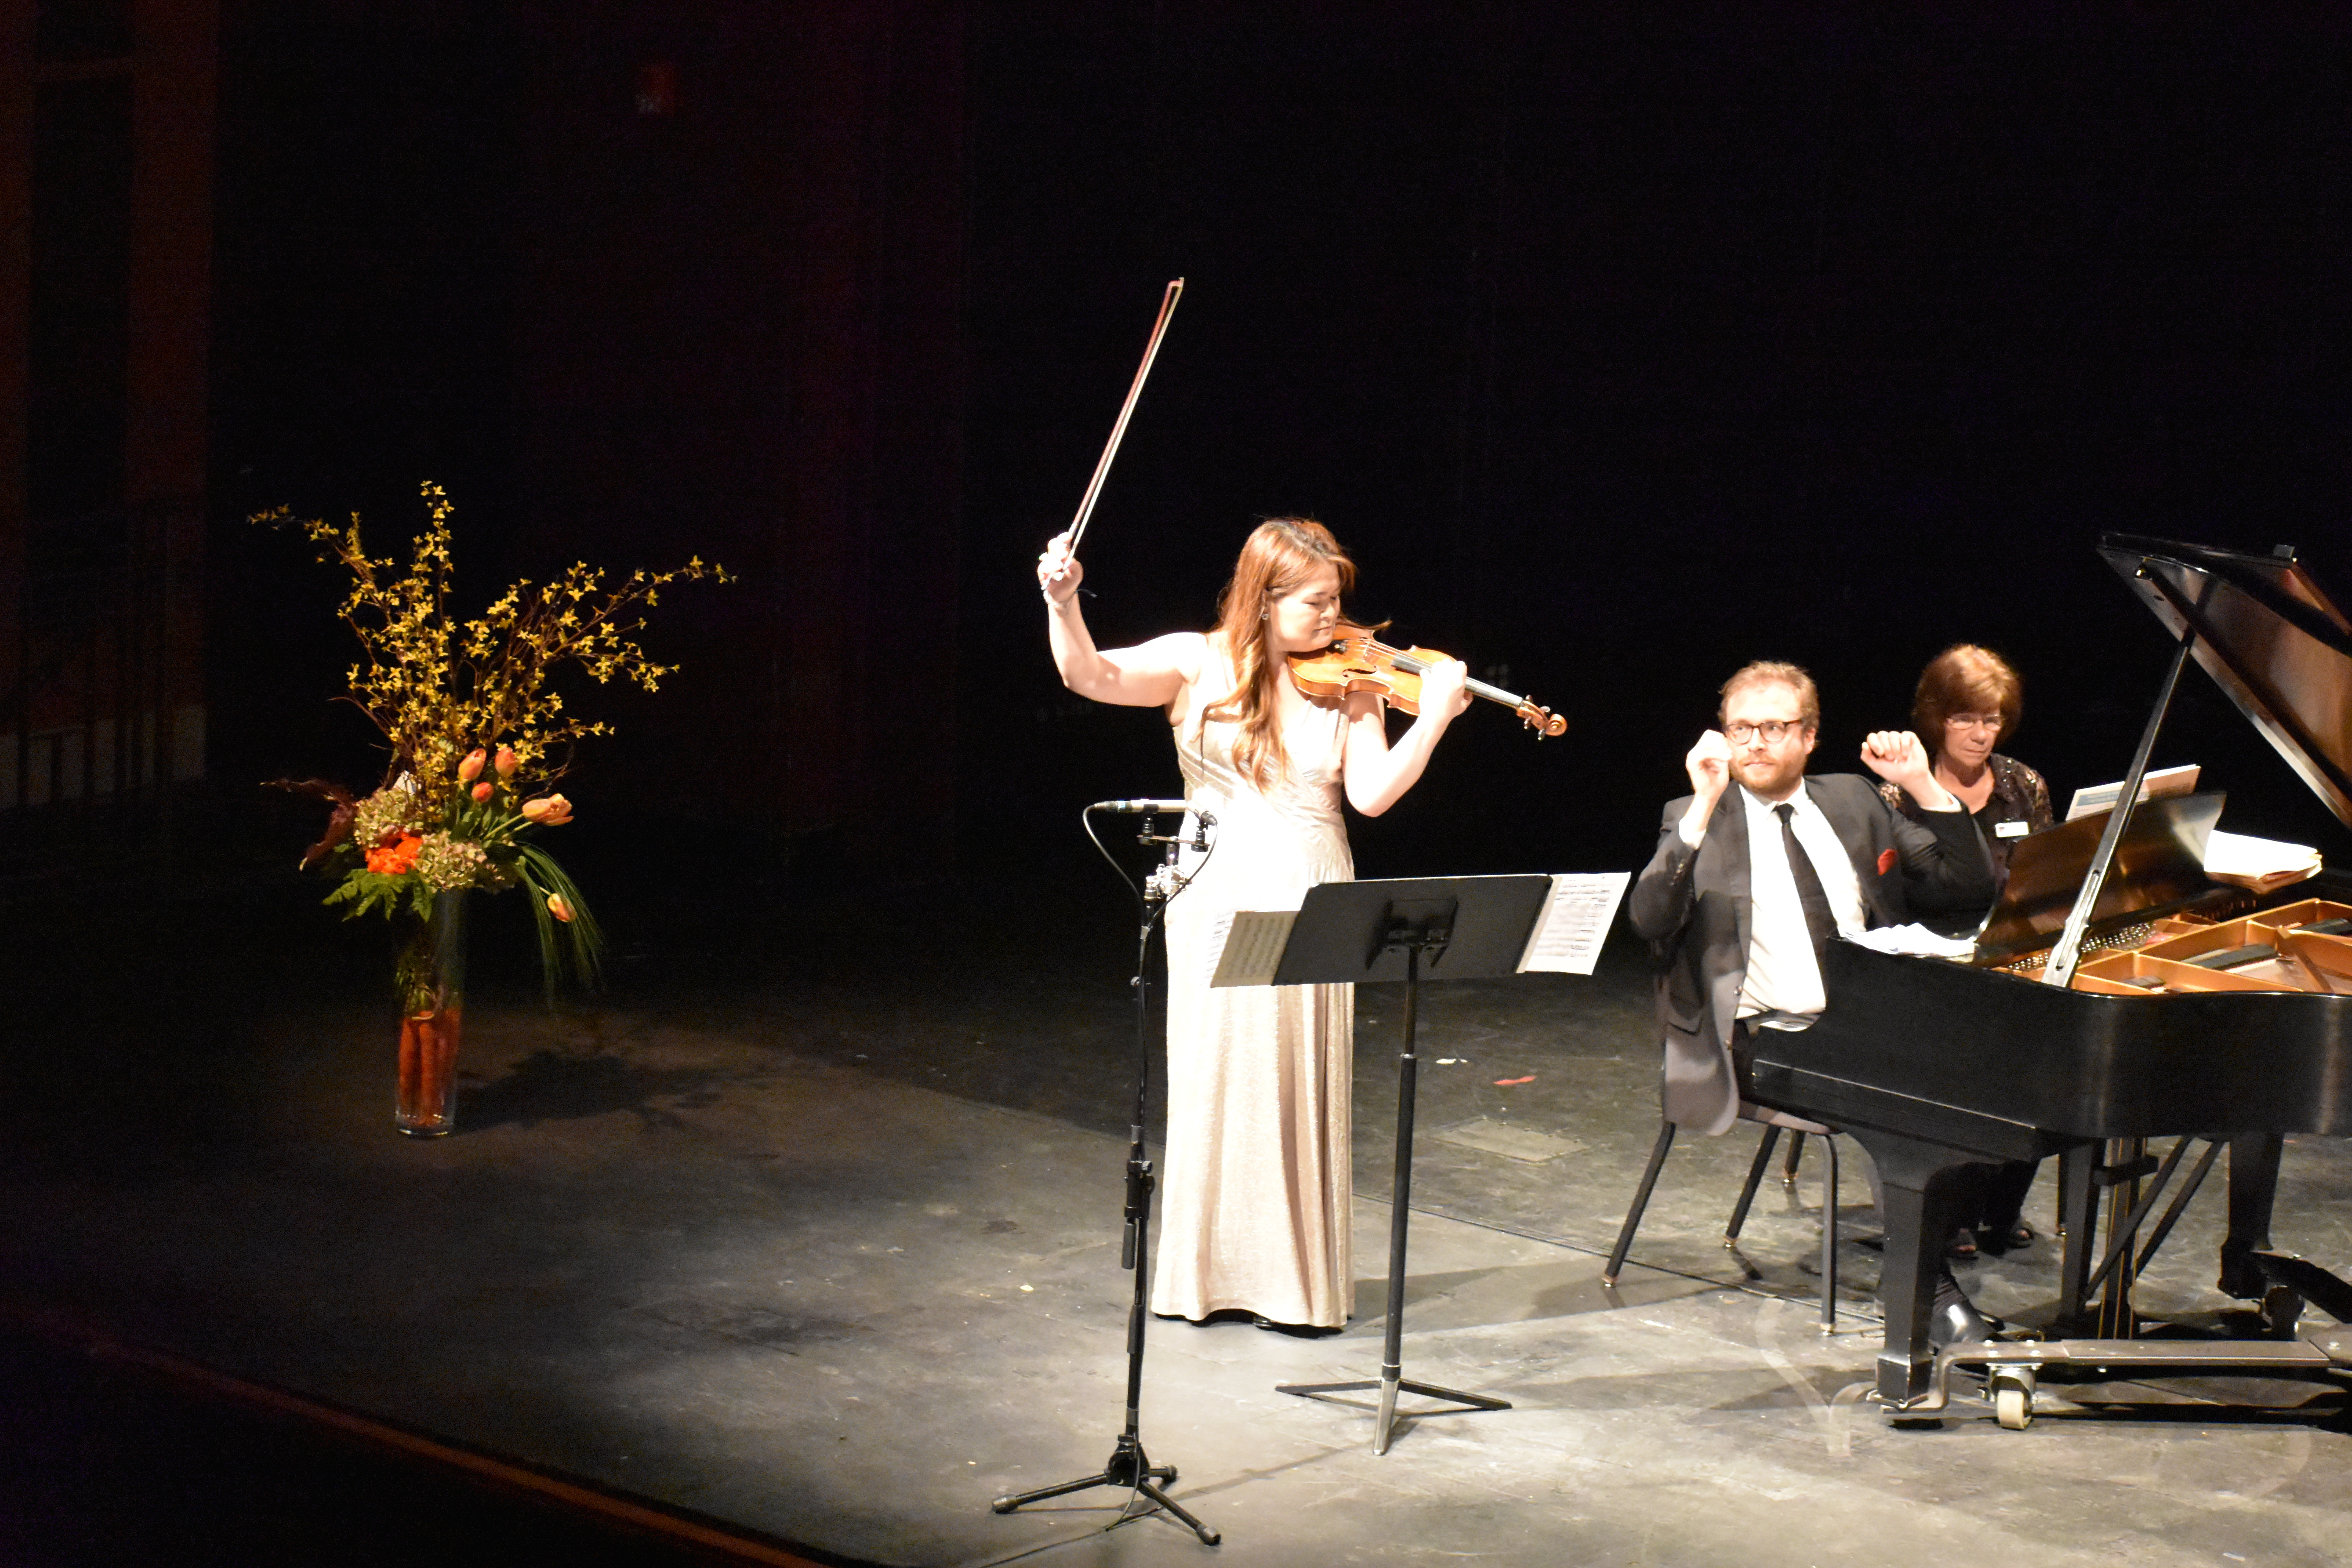 Crown City String Quartet performs at Wille Hall